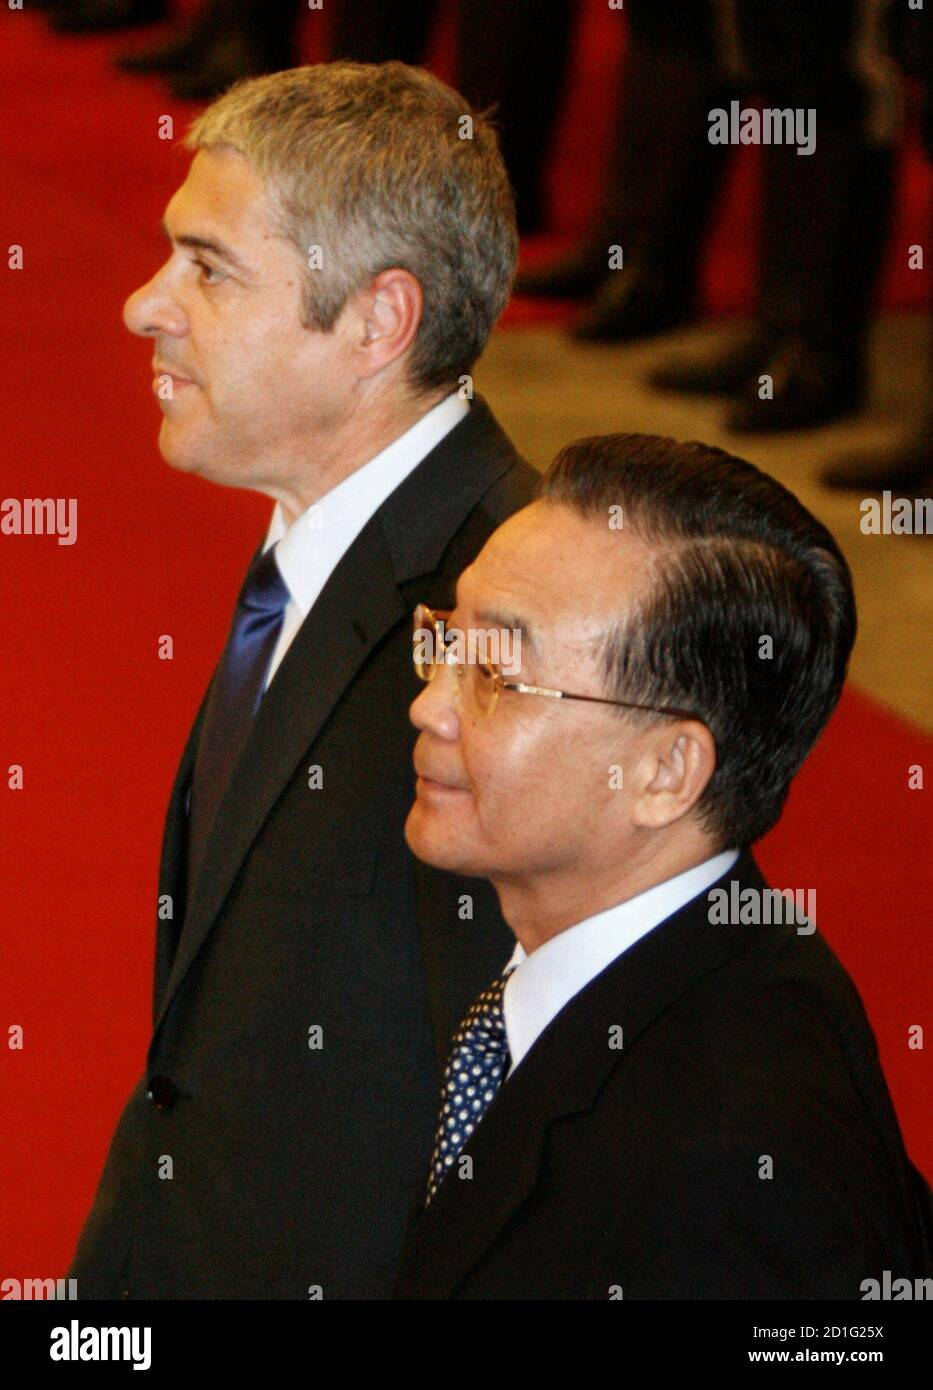 Chinese Prime Minister Wen Jiabao and visiting Portuguese counterpart Jose Socrates (L) review the honour guard during a welcoming ceremony at the Great Hall of the People in Beijing, January 31, 2007.  REUTERS/Claro Cortes IV   (CHINA) Stock Photo